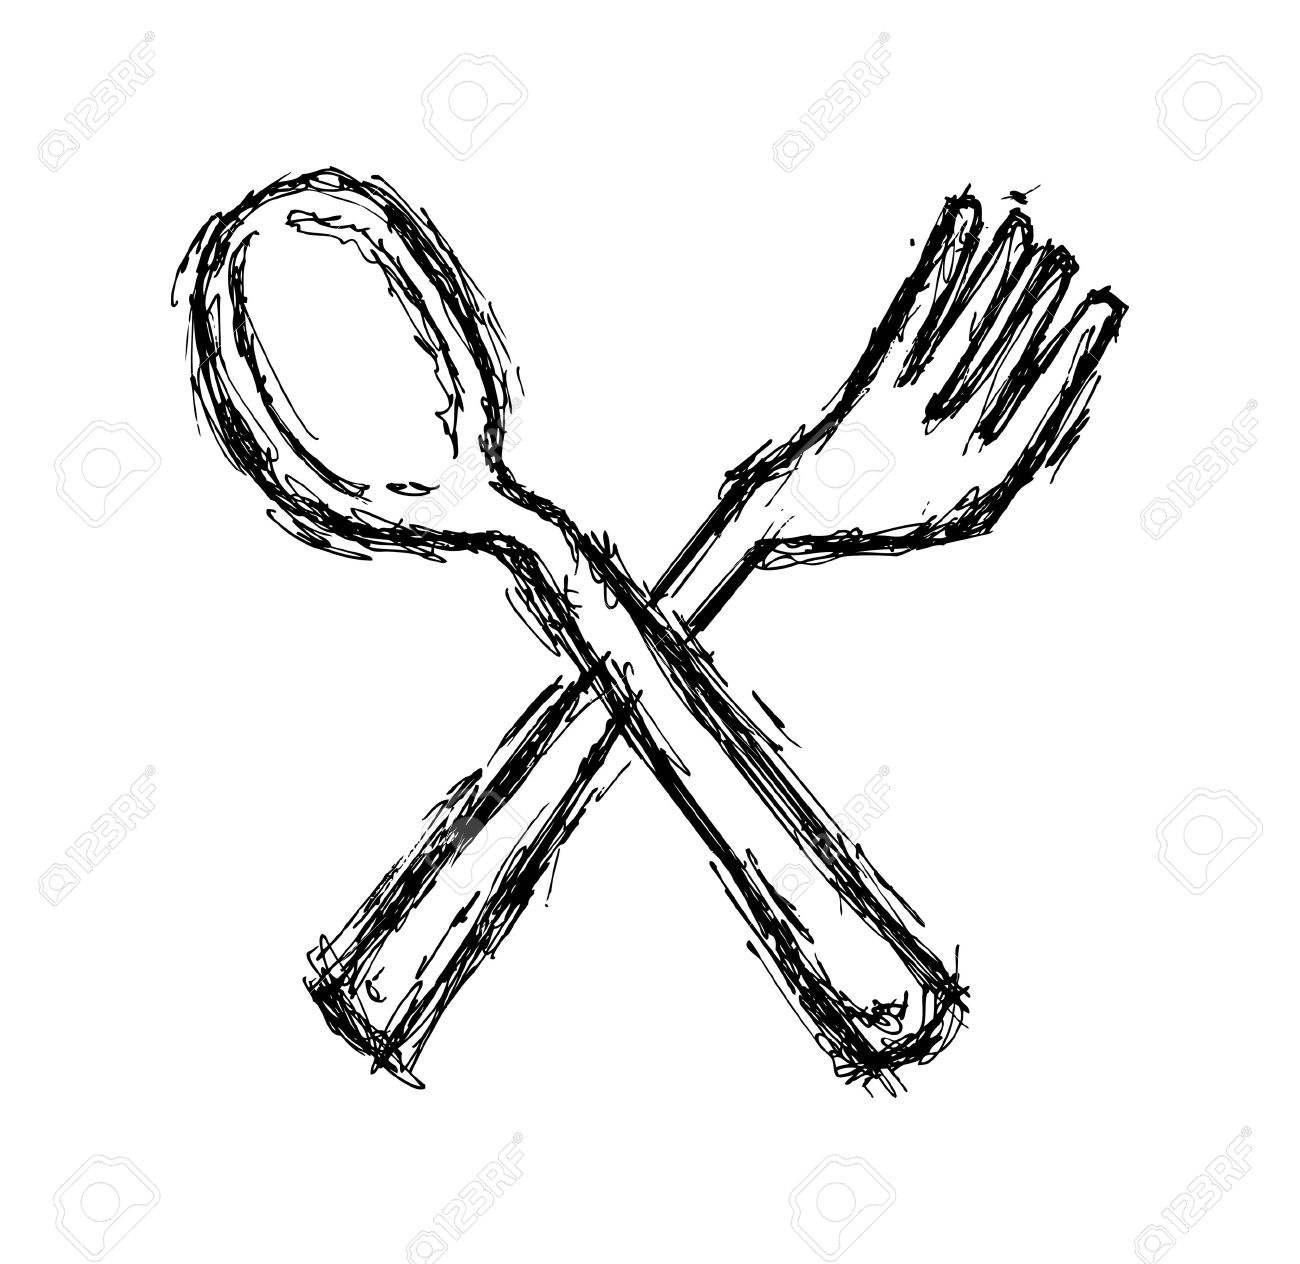 1300x1264 Hand Drawn Fork Spoon Royalty Free Cliparts, Vectors,